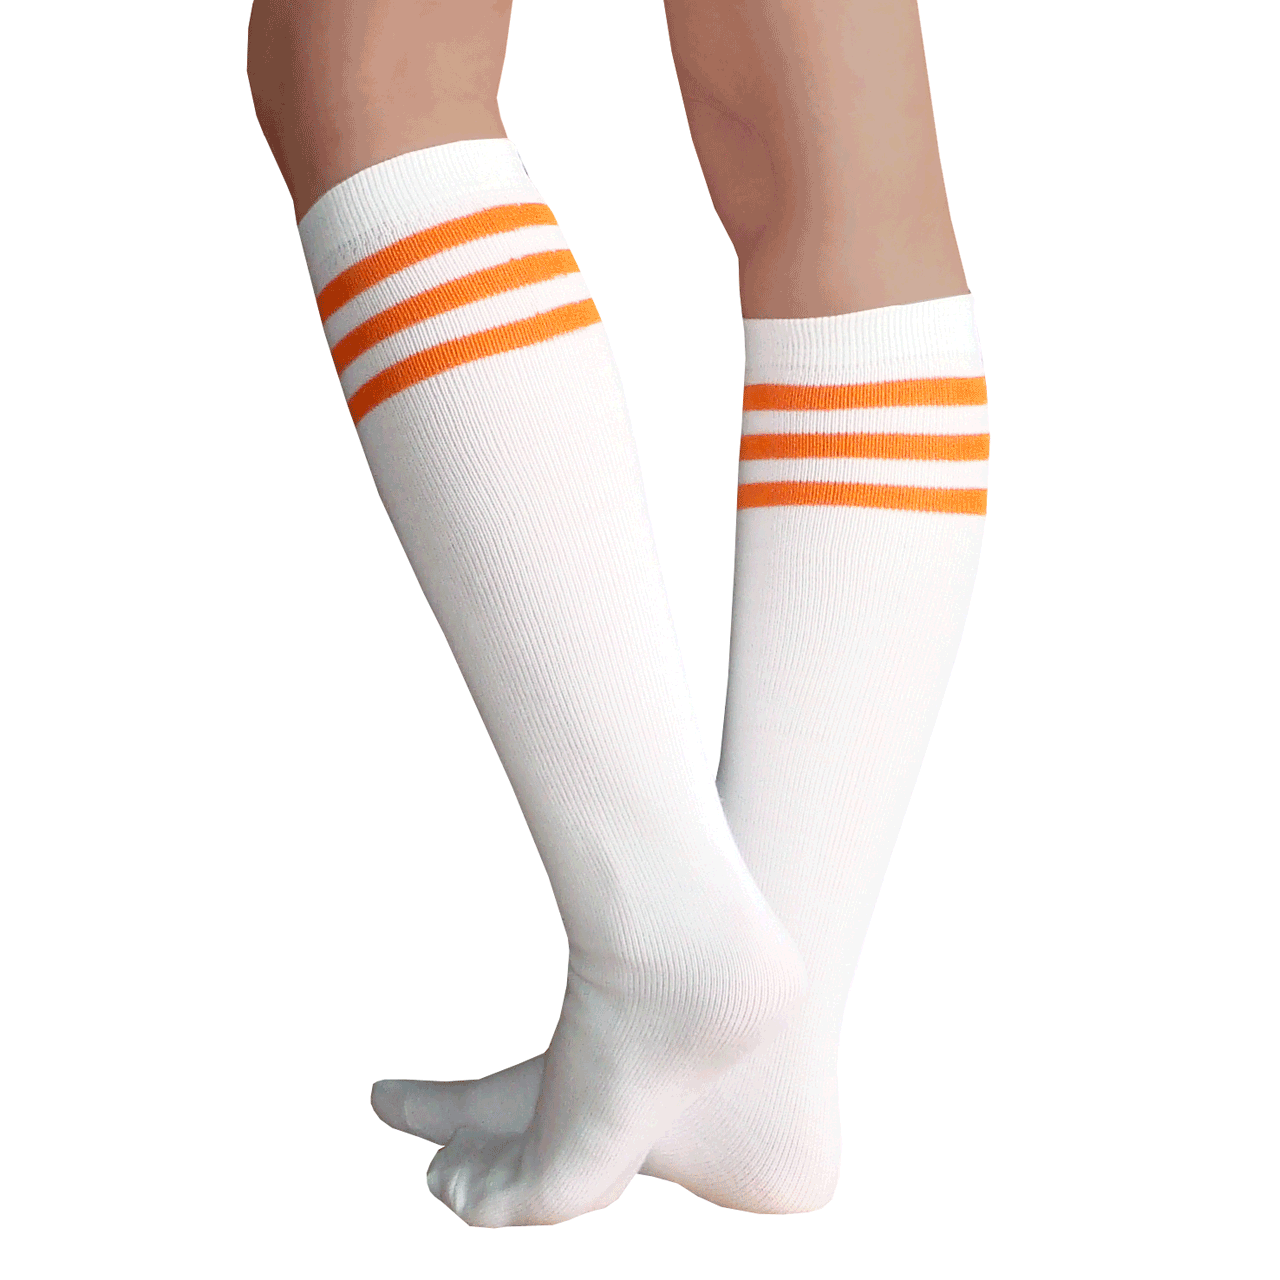 bca871311cf White Tube socks with Orange Stripes